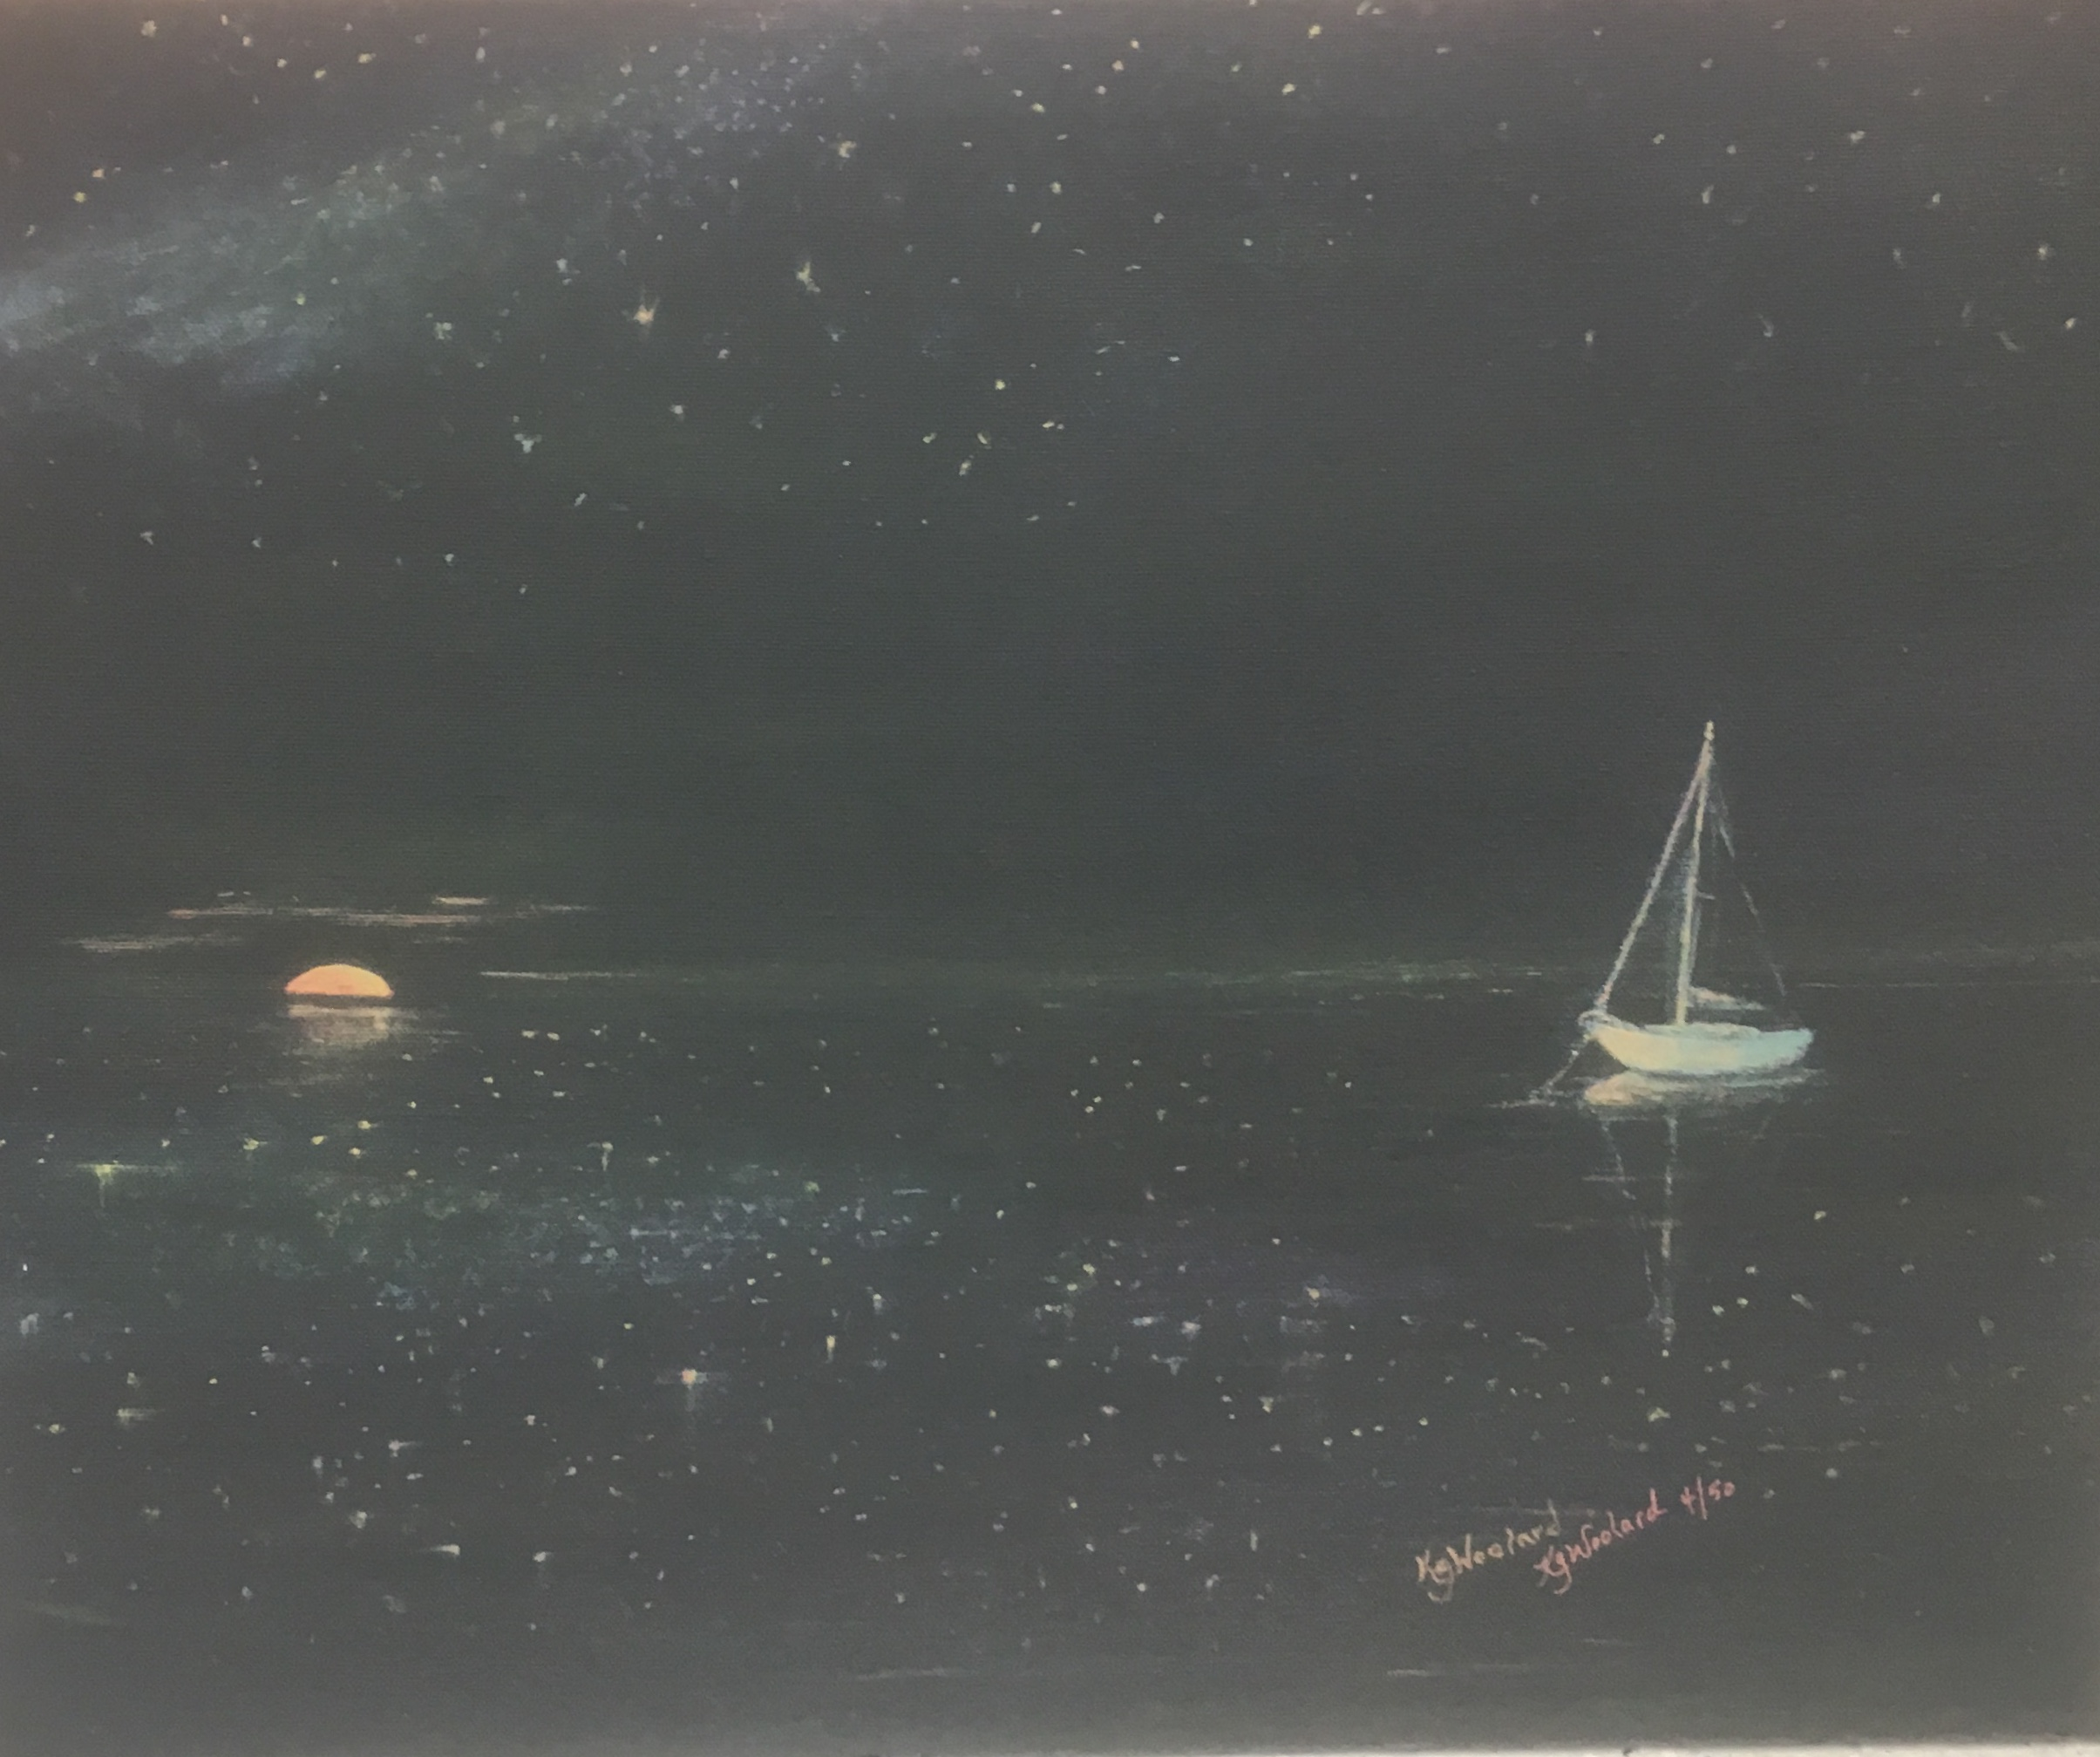 Stars on the Water, 16 x 20, canvas giclee, $180